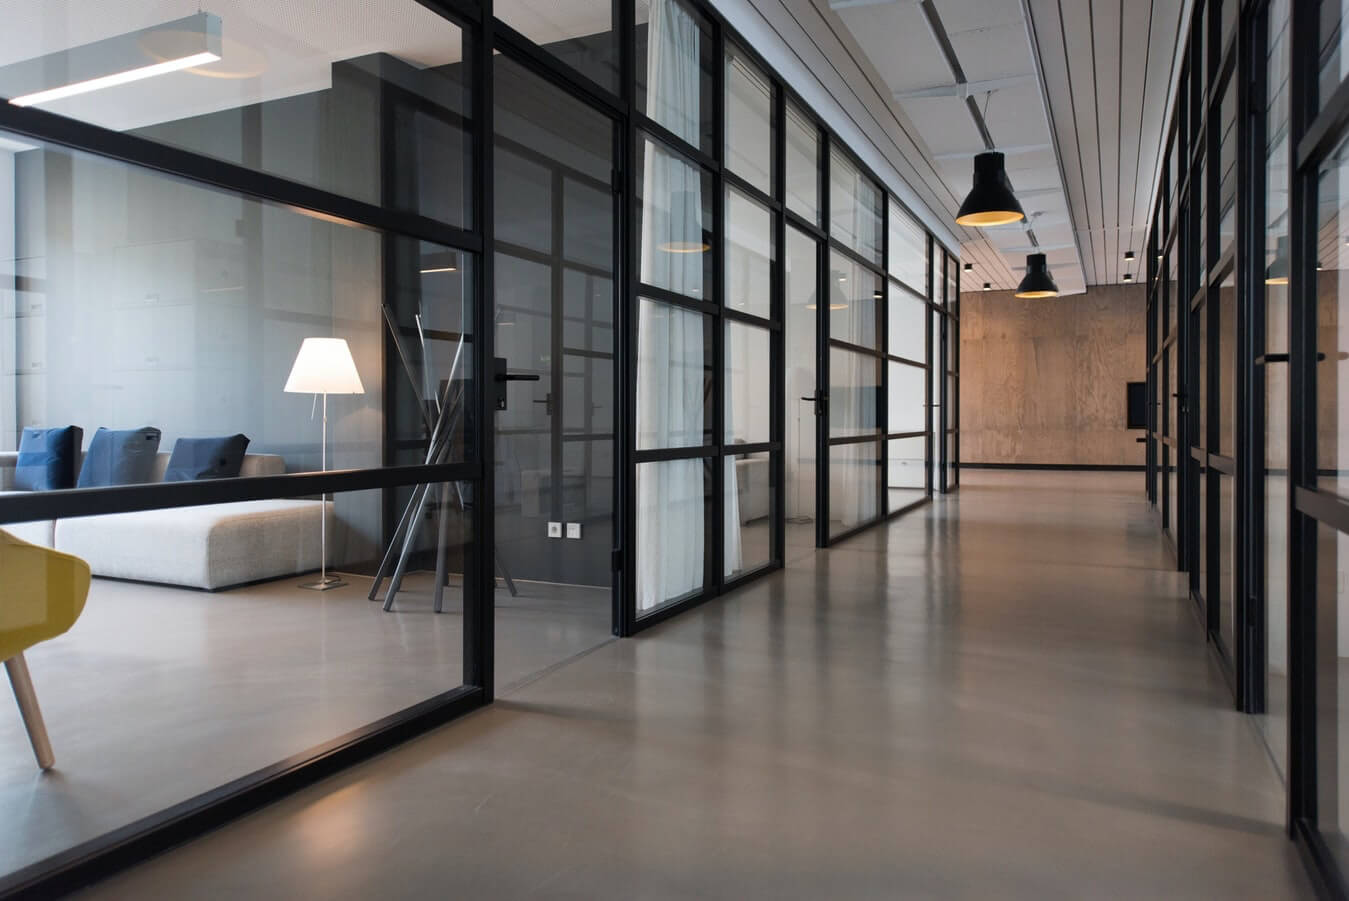 A hallway inside of an office with glass walls on either side